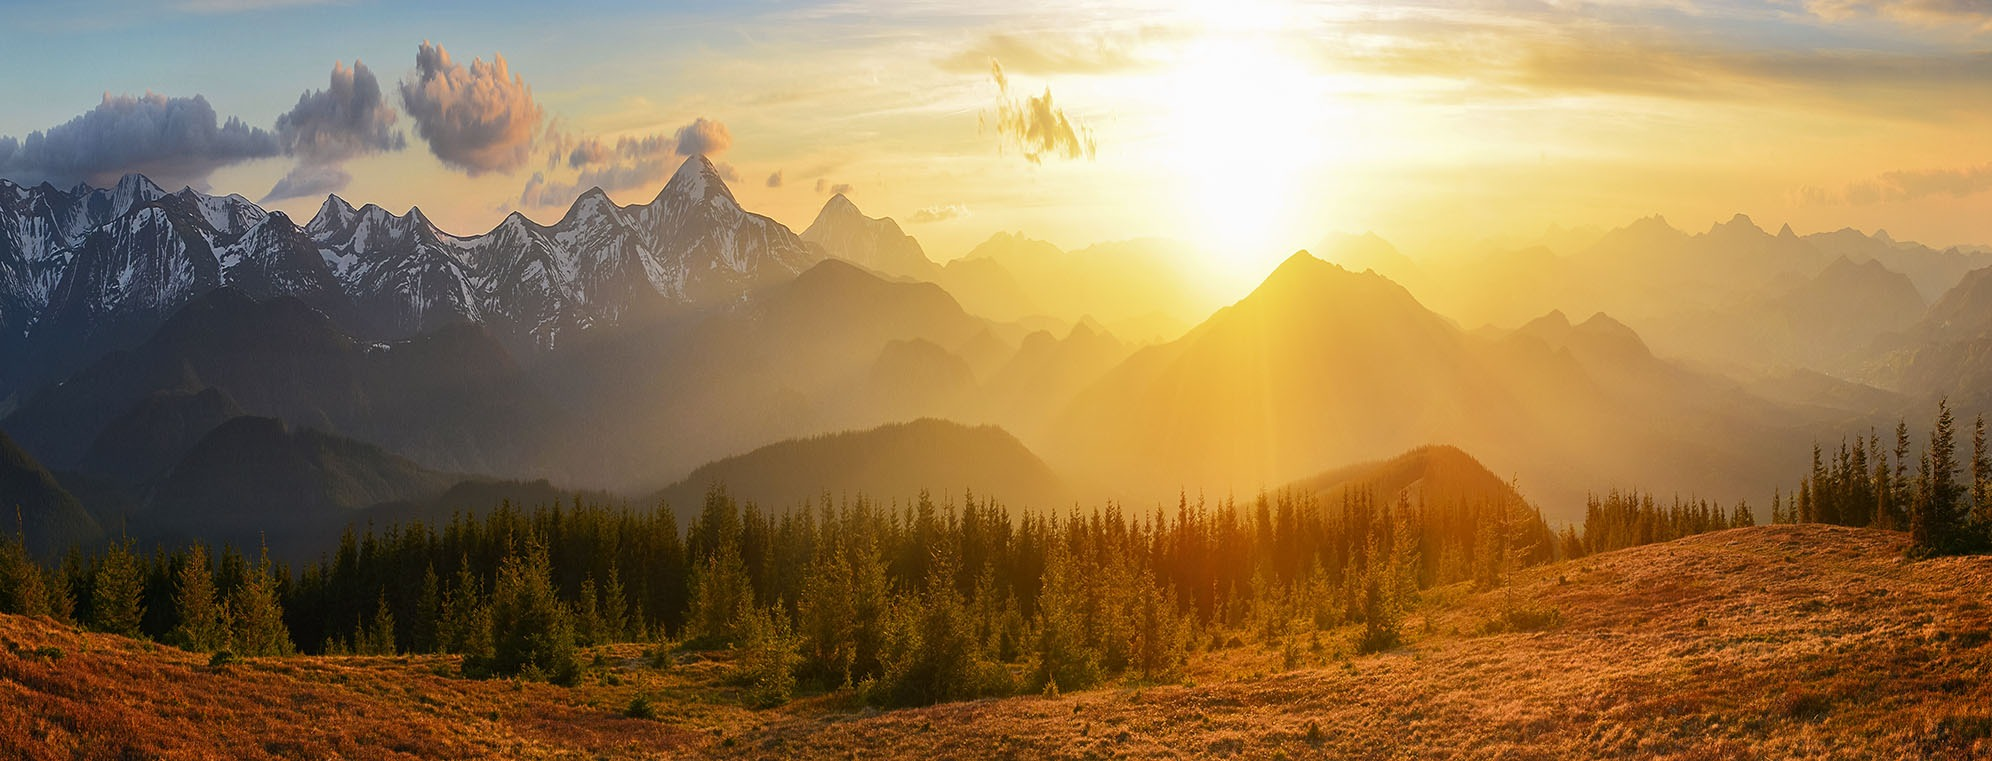 Canvas Prints - Sunset Mountains